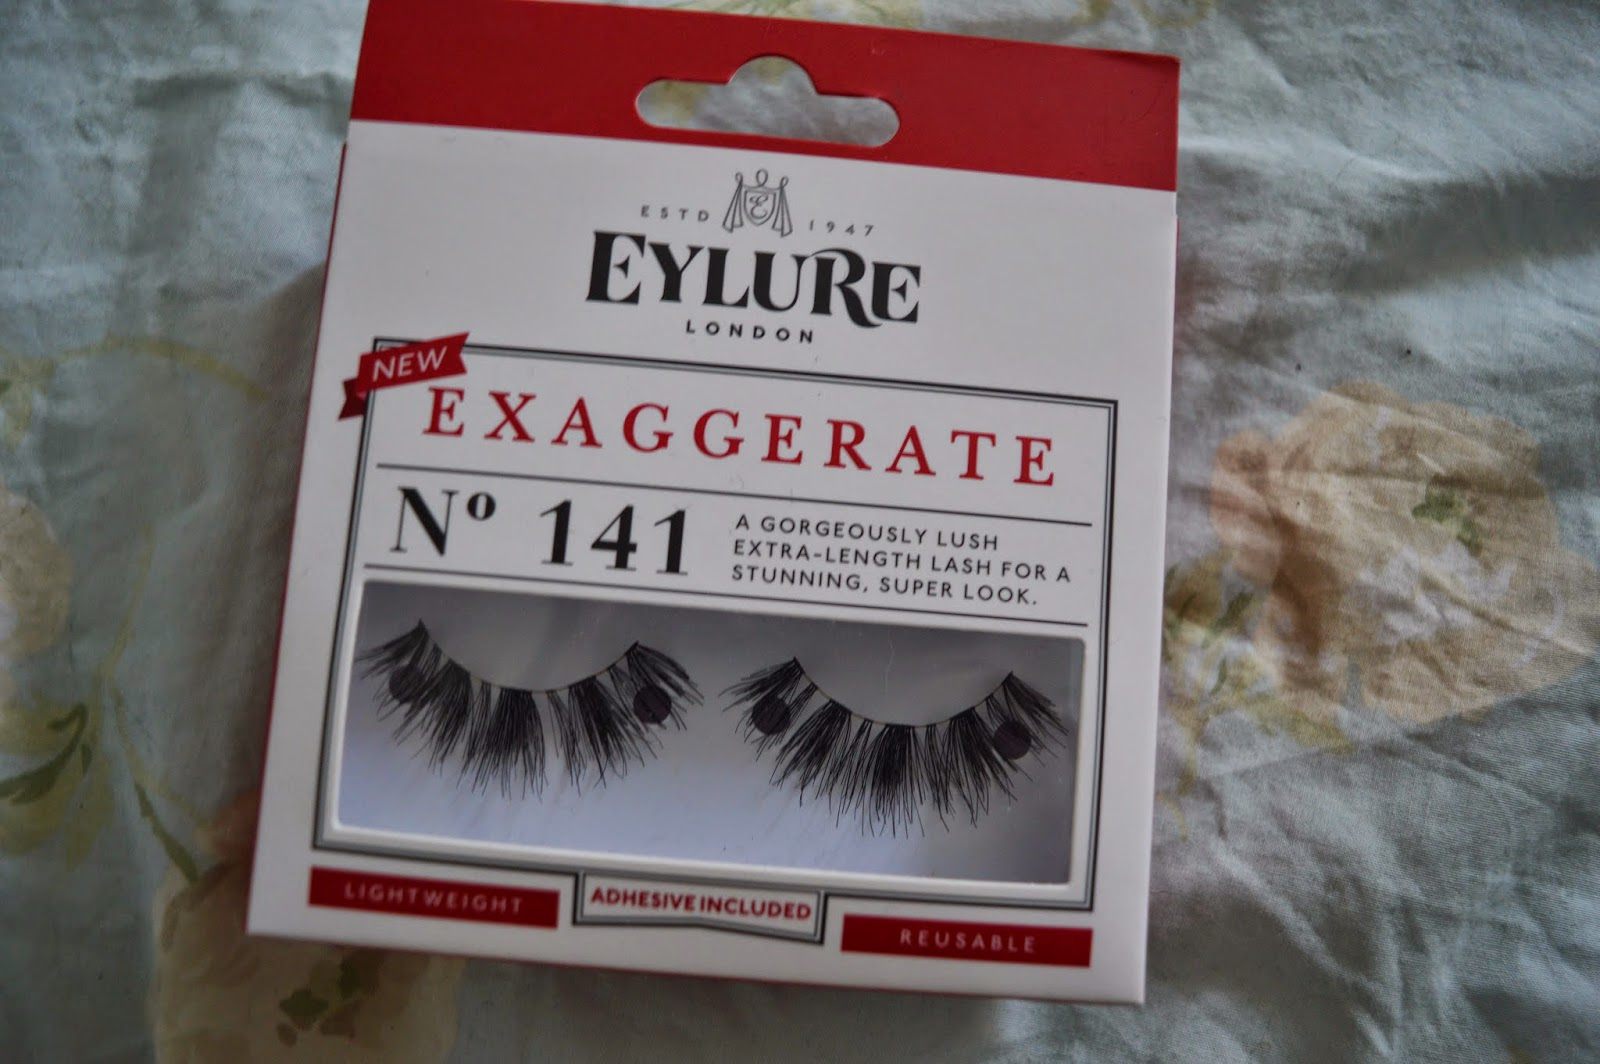 Eylure 141 exaggerate eyelashes